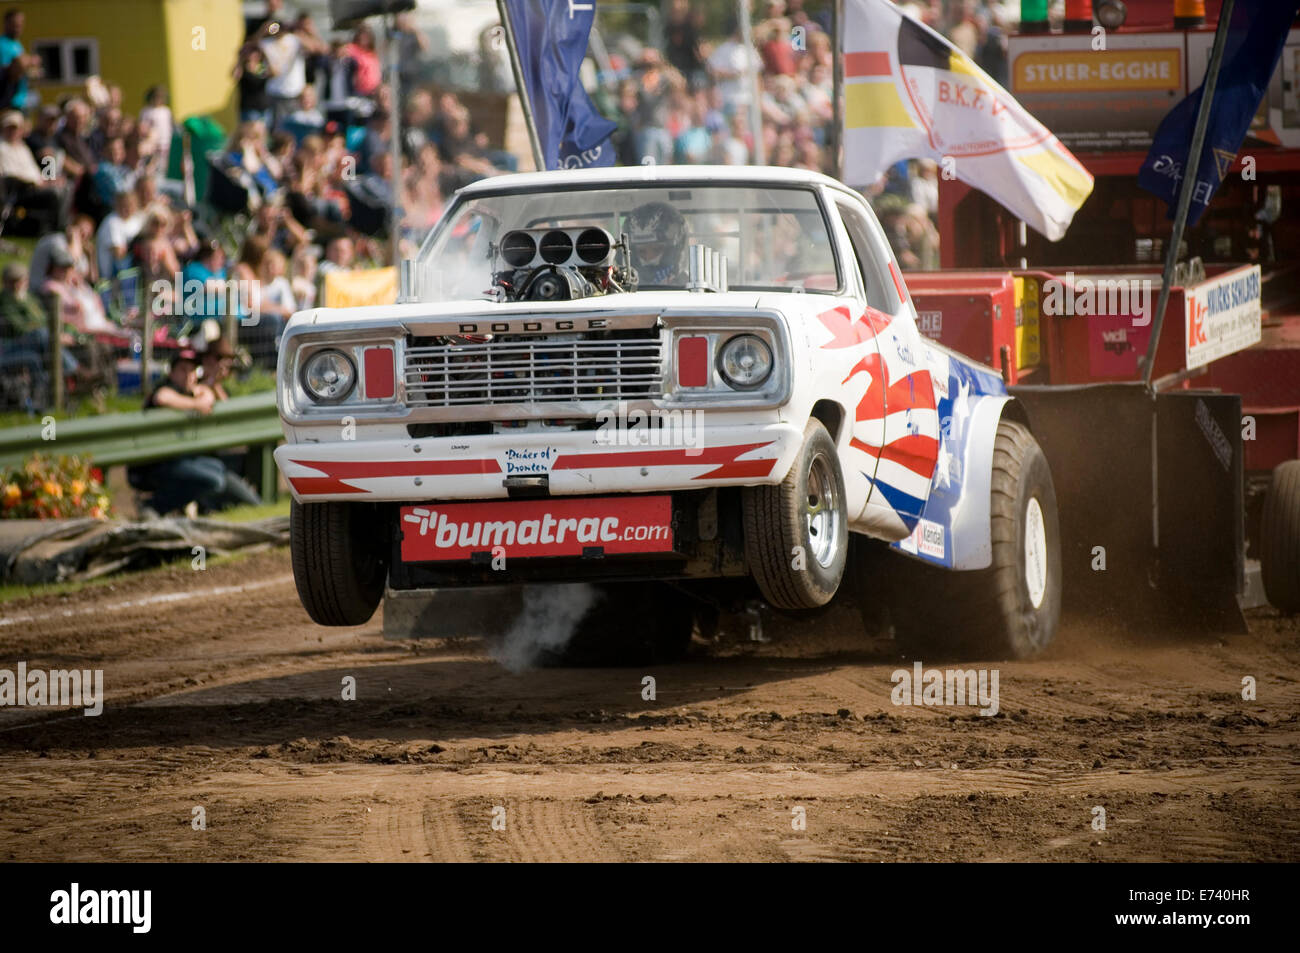 tractor puller pullers pulling 2wd two wheel drive 2 dragging a large weight sled wheelie wheeling motorsport sport - Stock Image